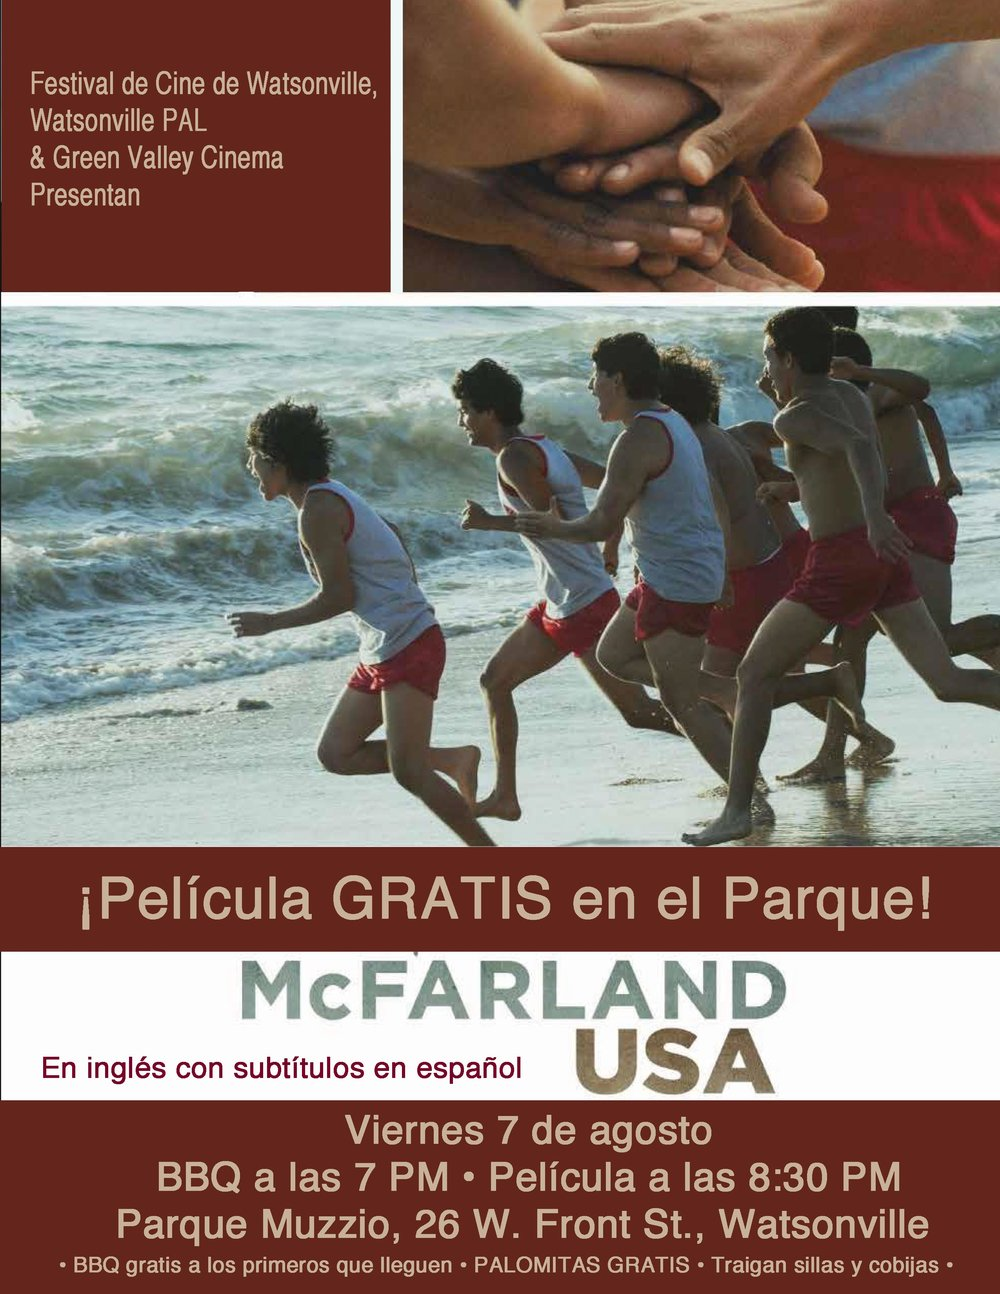 McFarland USA - Flyer_Spa.jpg